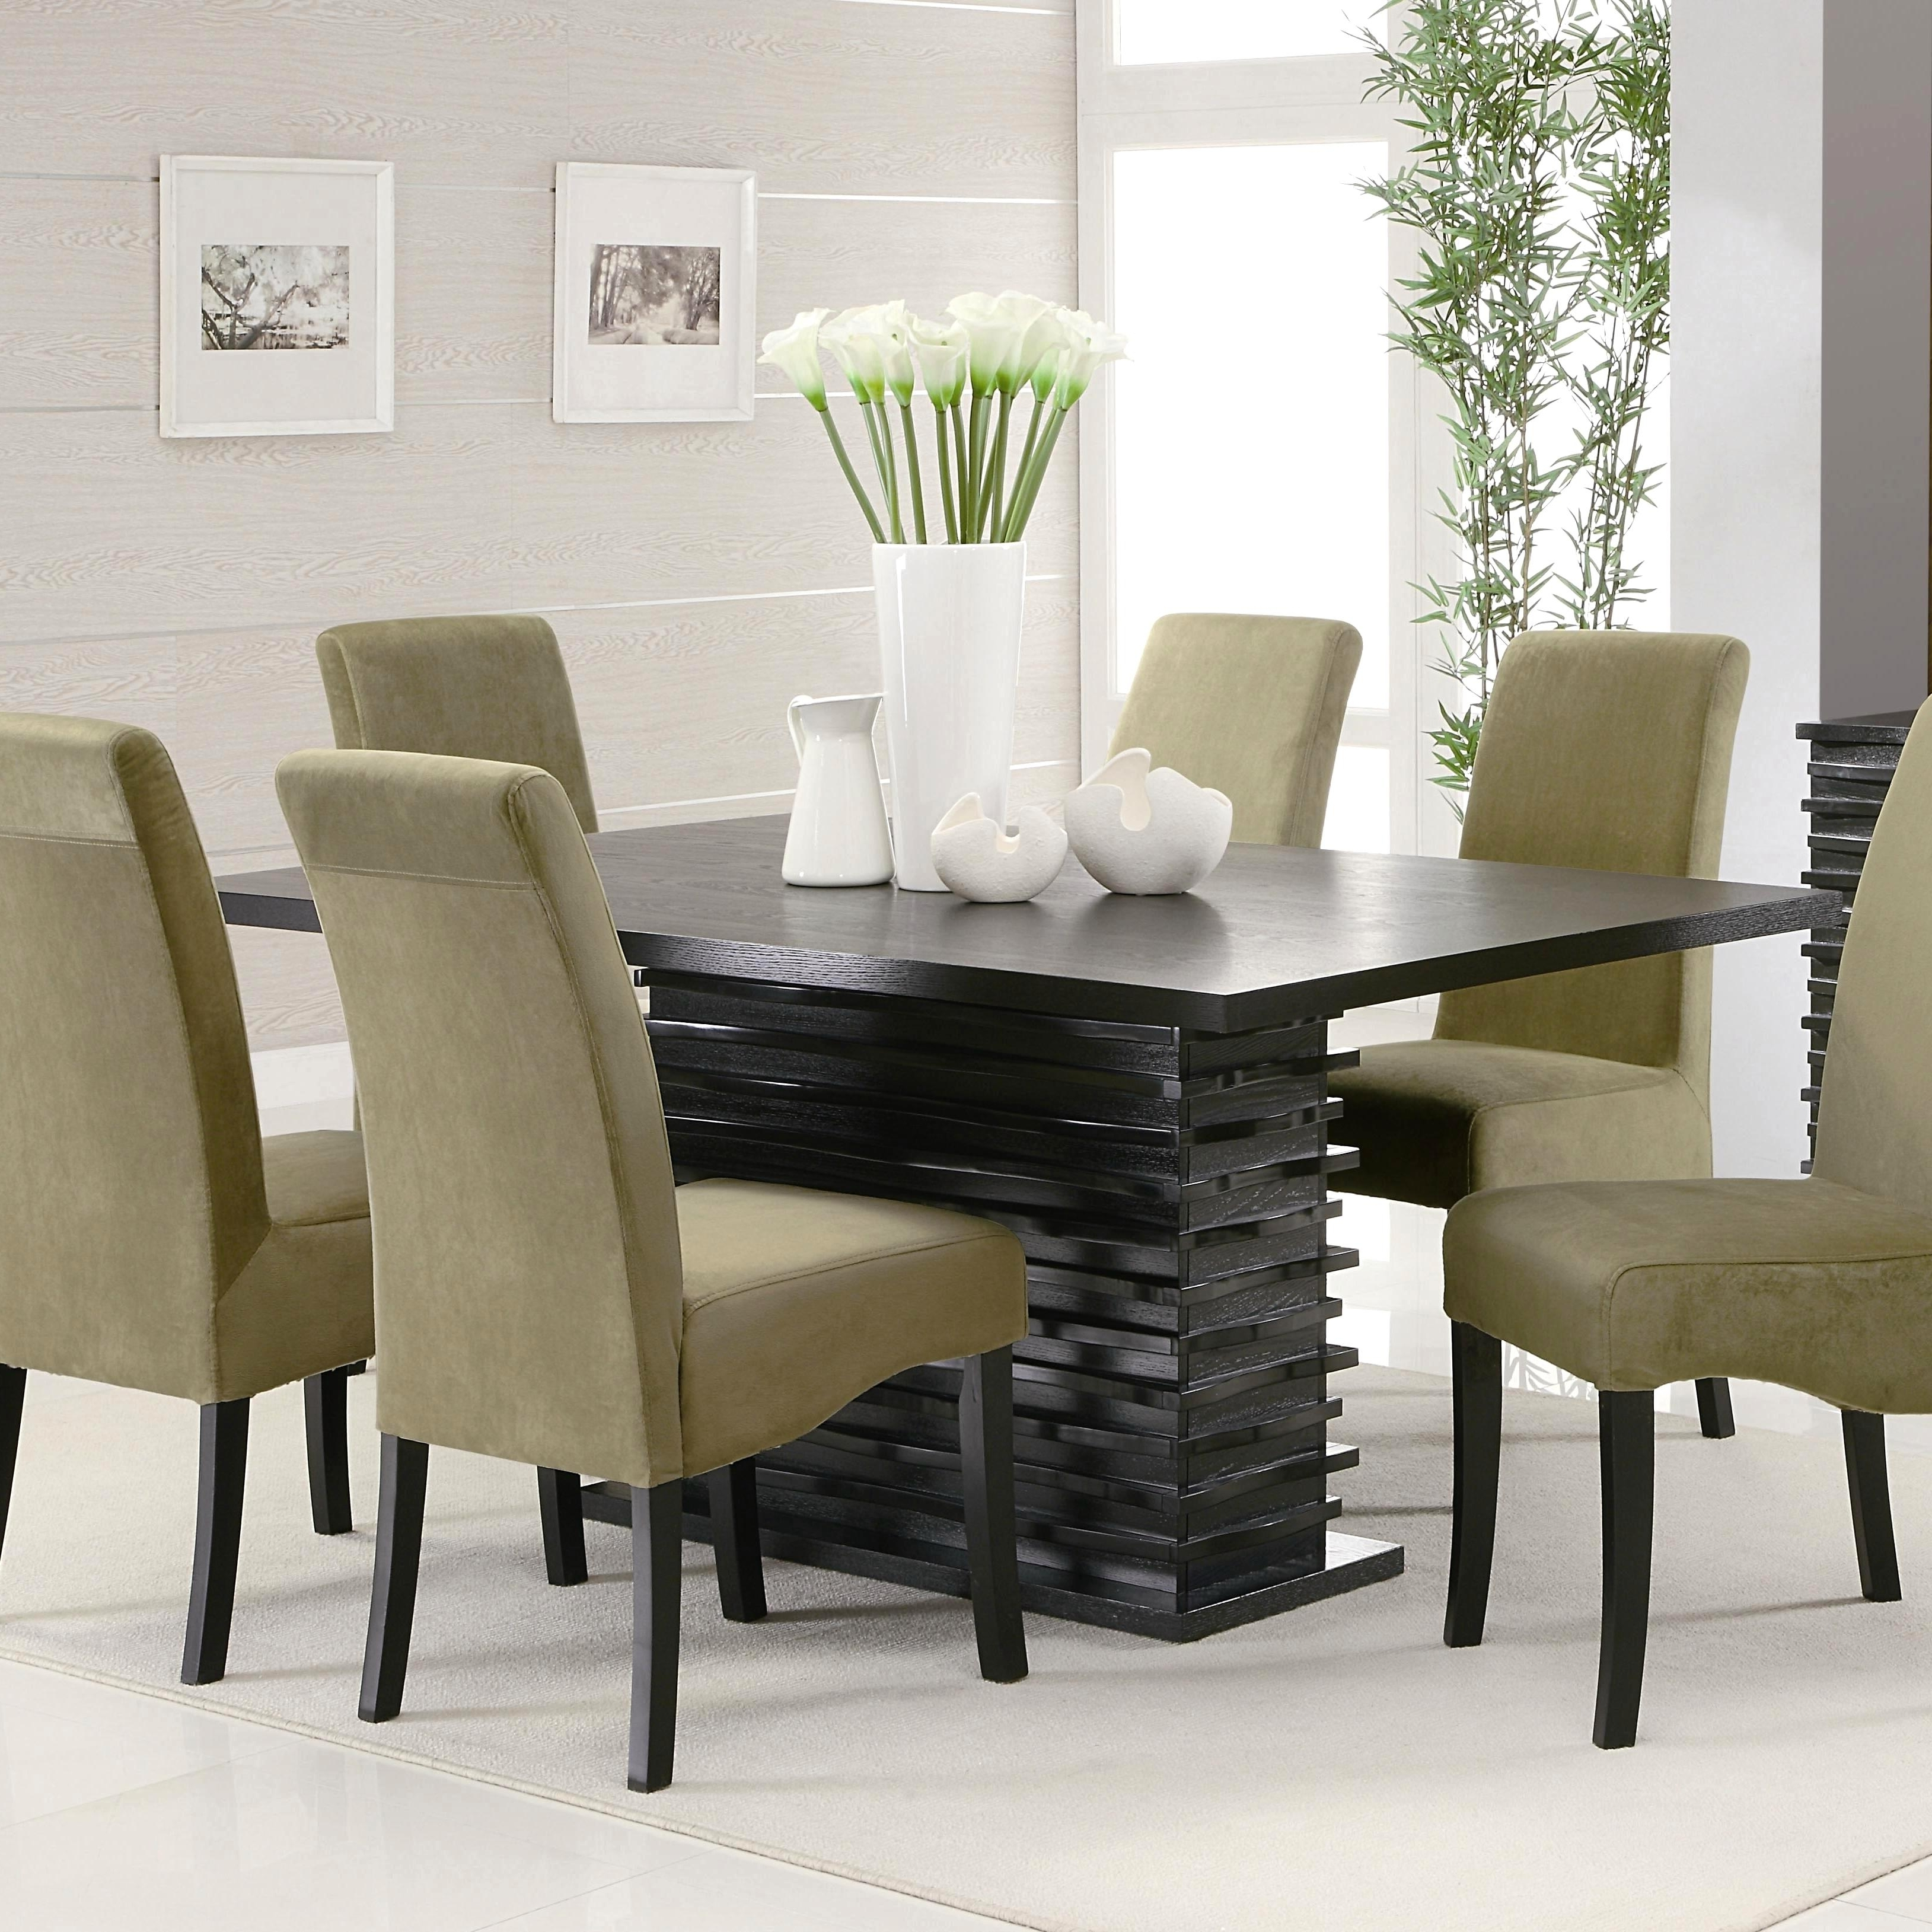 Well Known Cream Dining Tables And Chairs Pertaining To Splendid Cream Dining Tables Chairs Luxurius Home Ning Chairs (View 20 of 25)